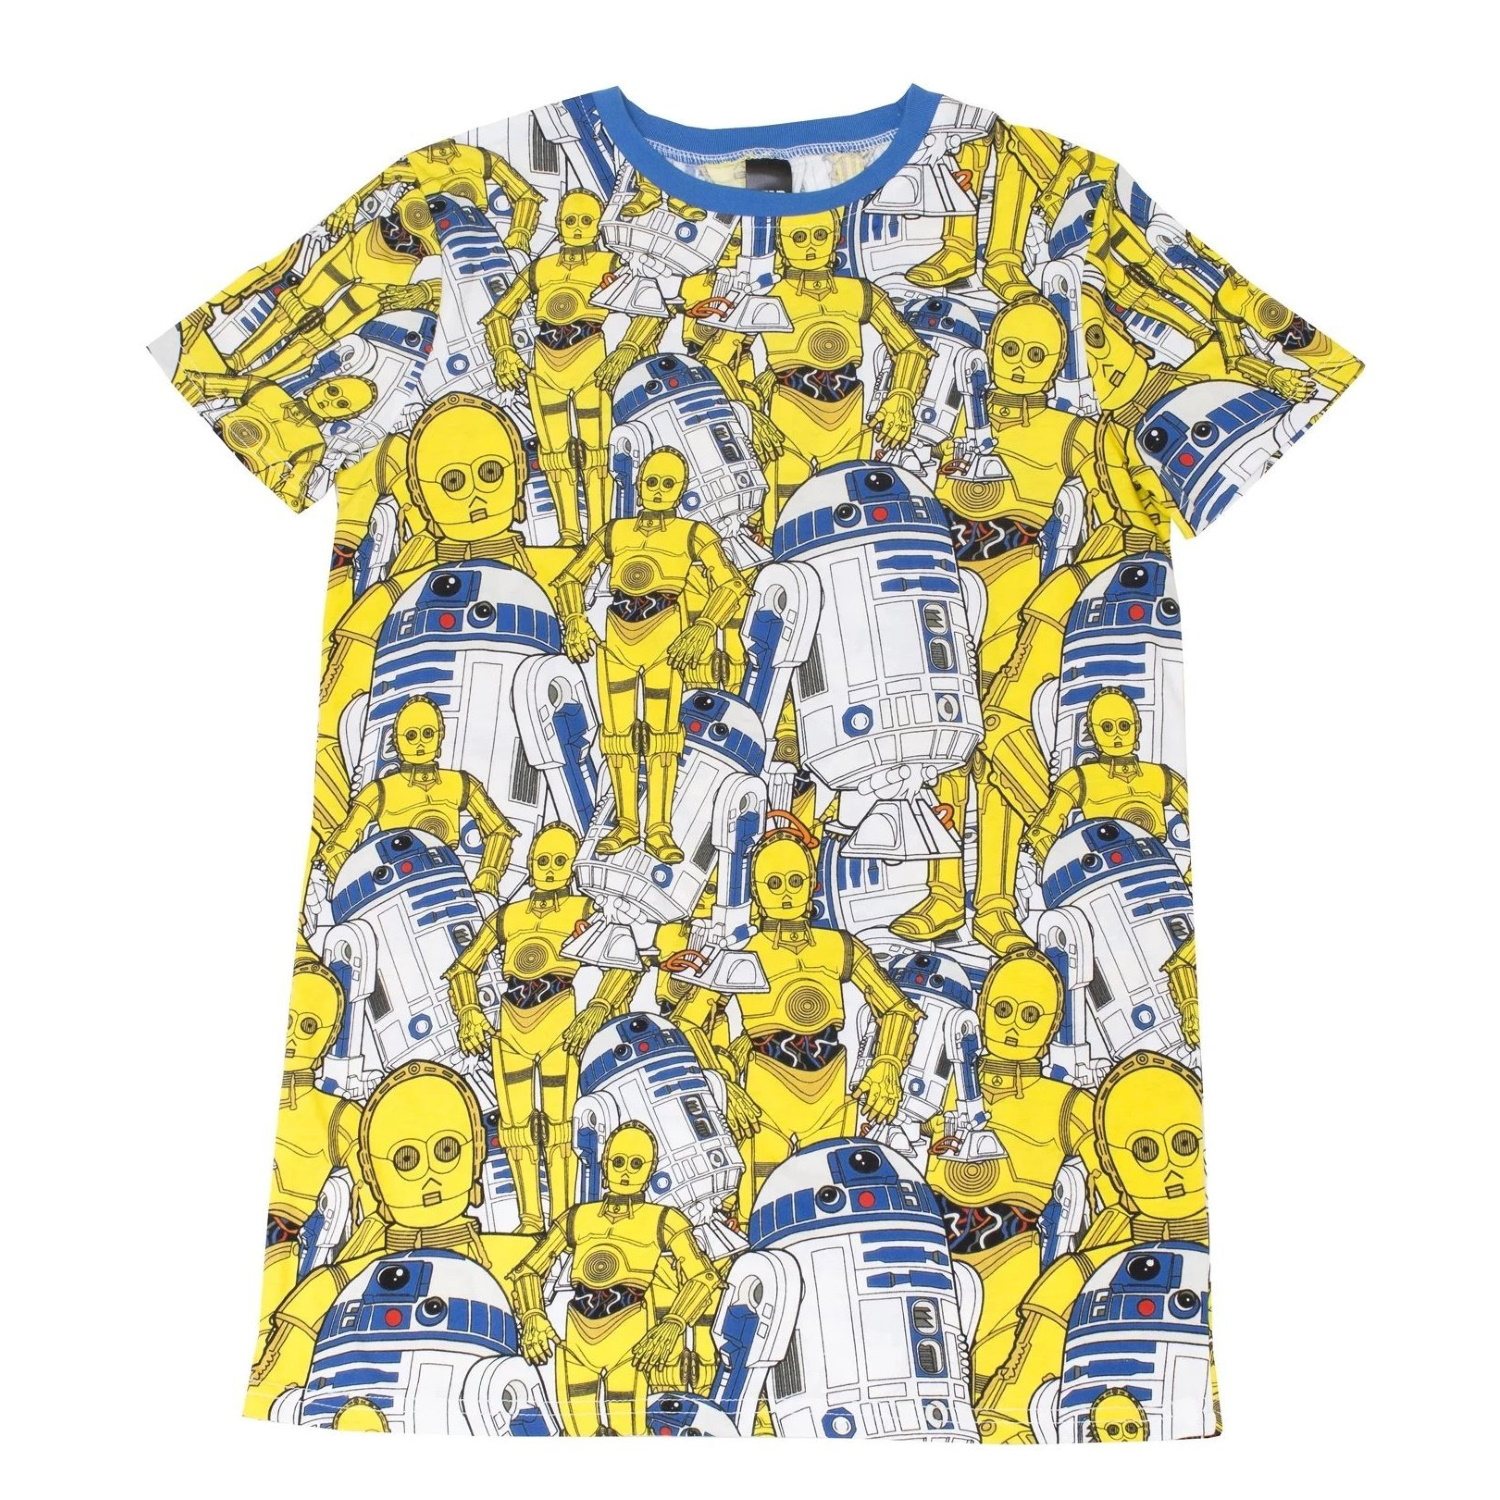 Cakeworthy x Star Wars Droids All Over Print T-Shirt